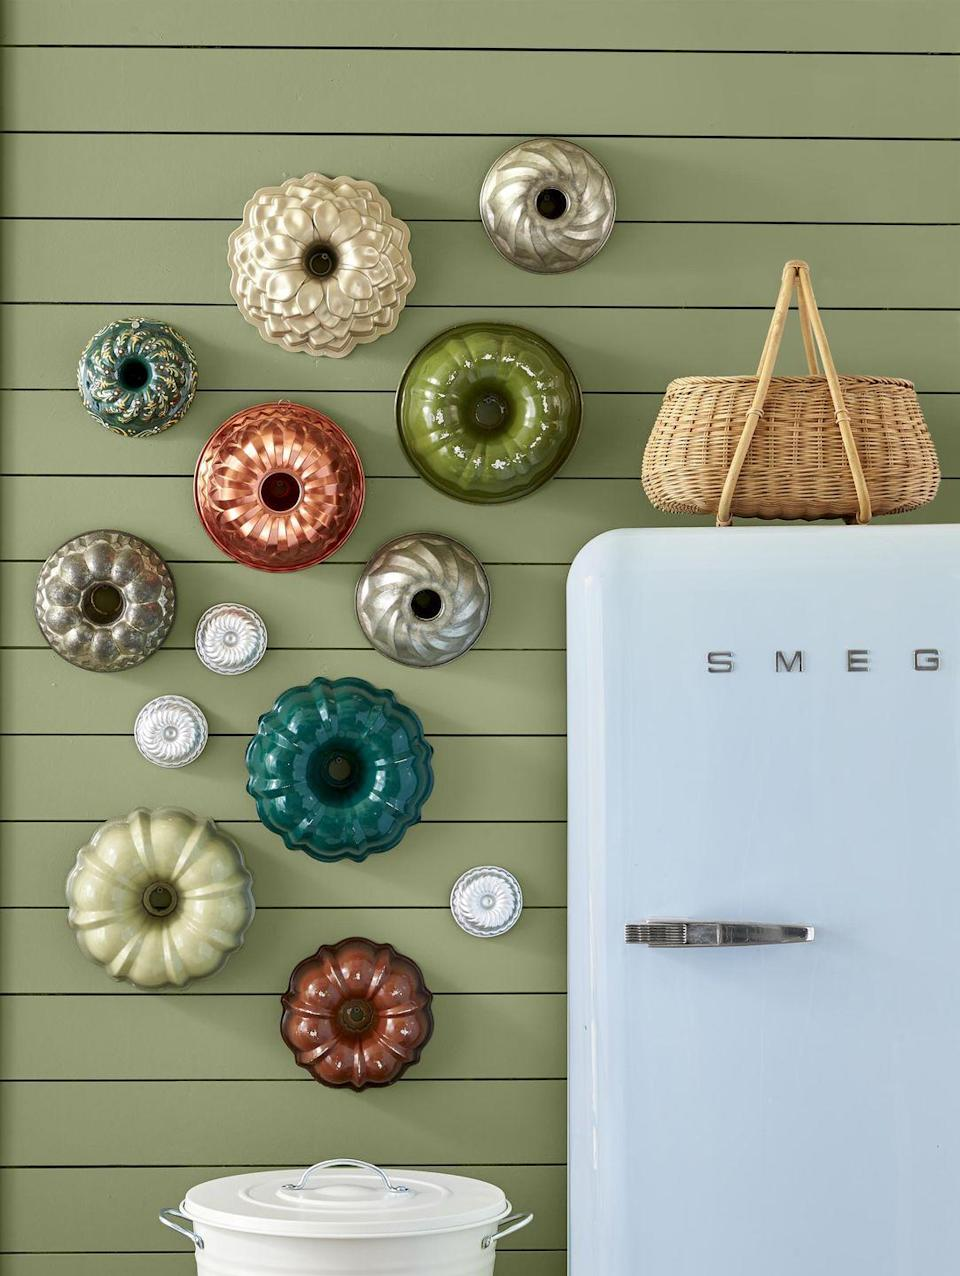 <p>A collection of colorful vintage Bundt pans in assorted shapes lends retro flair to a kitchen or pantry wall. Bonus: You can take 'em down and use them as needed. Hang using magnets or strips of double-sided velcro.</p>